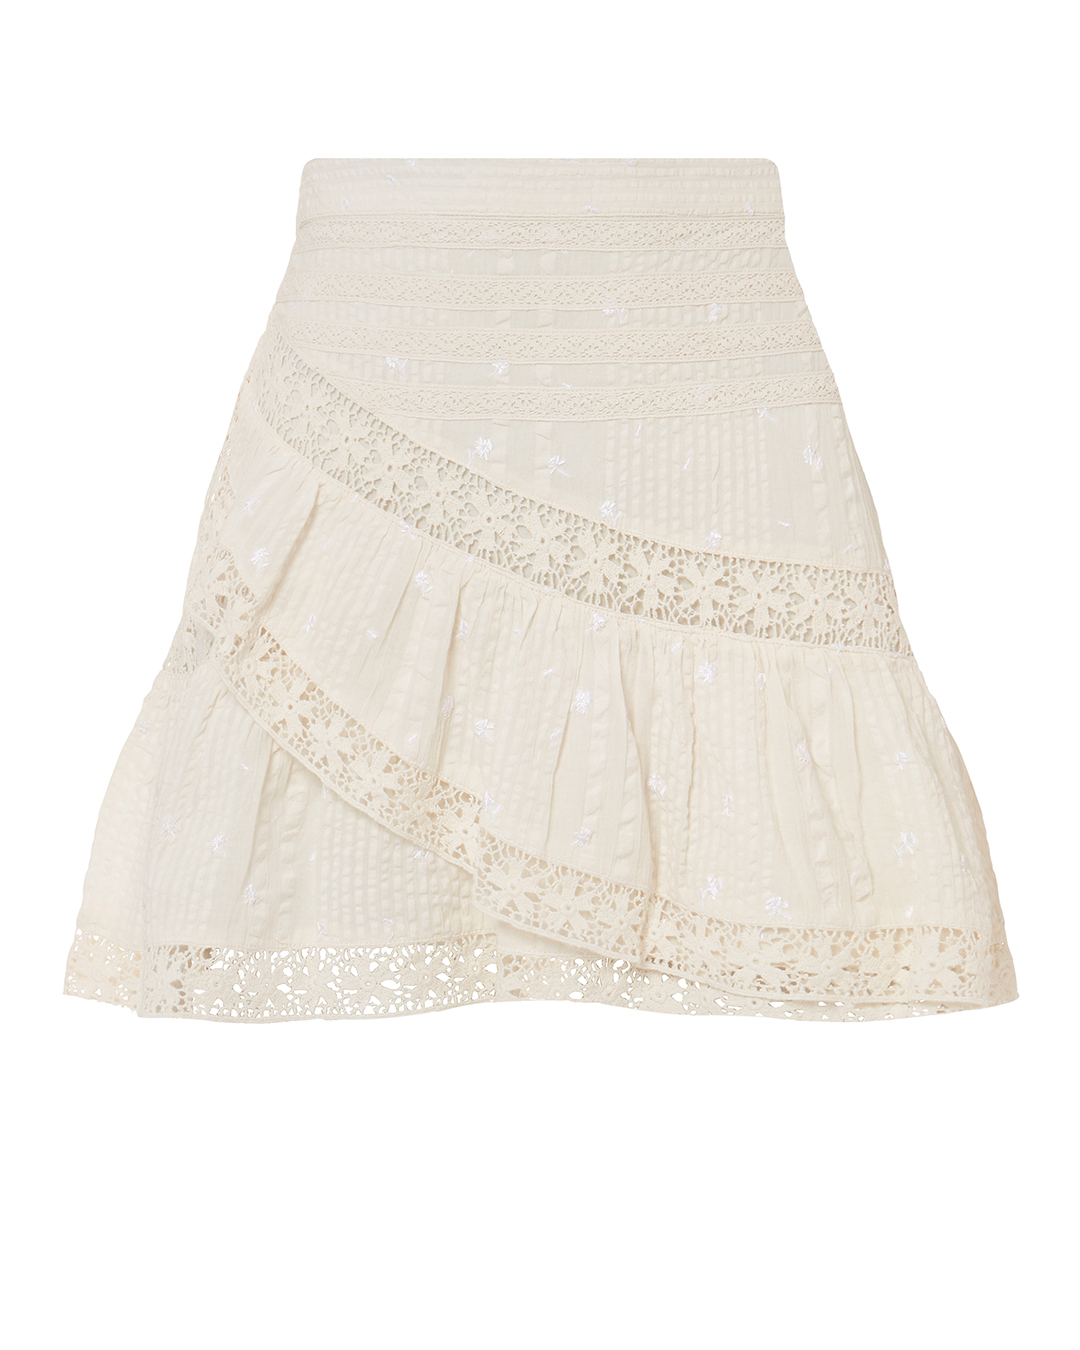 LOVE SHACK FANCY OVESHACKFANCY PIPER ACE MINI SKIRT IVORY